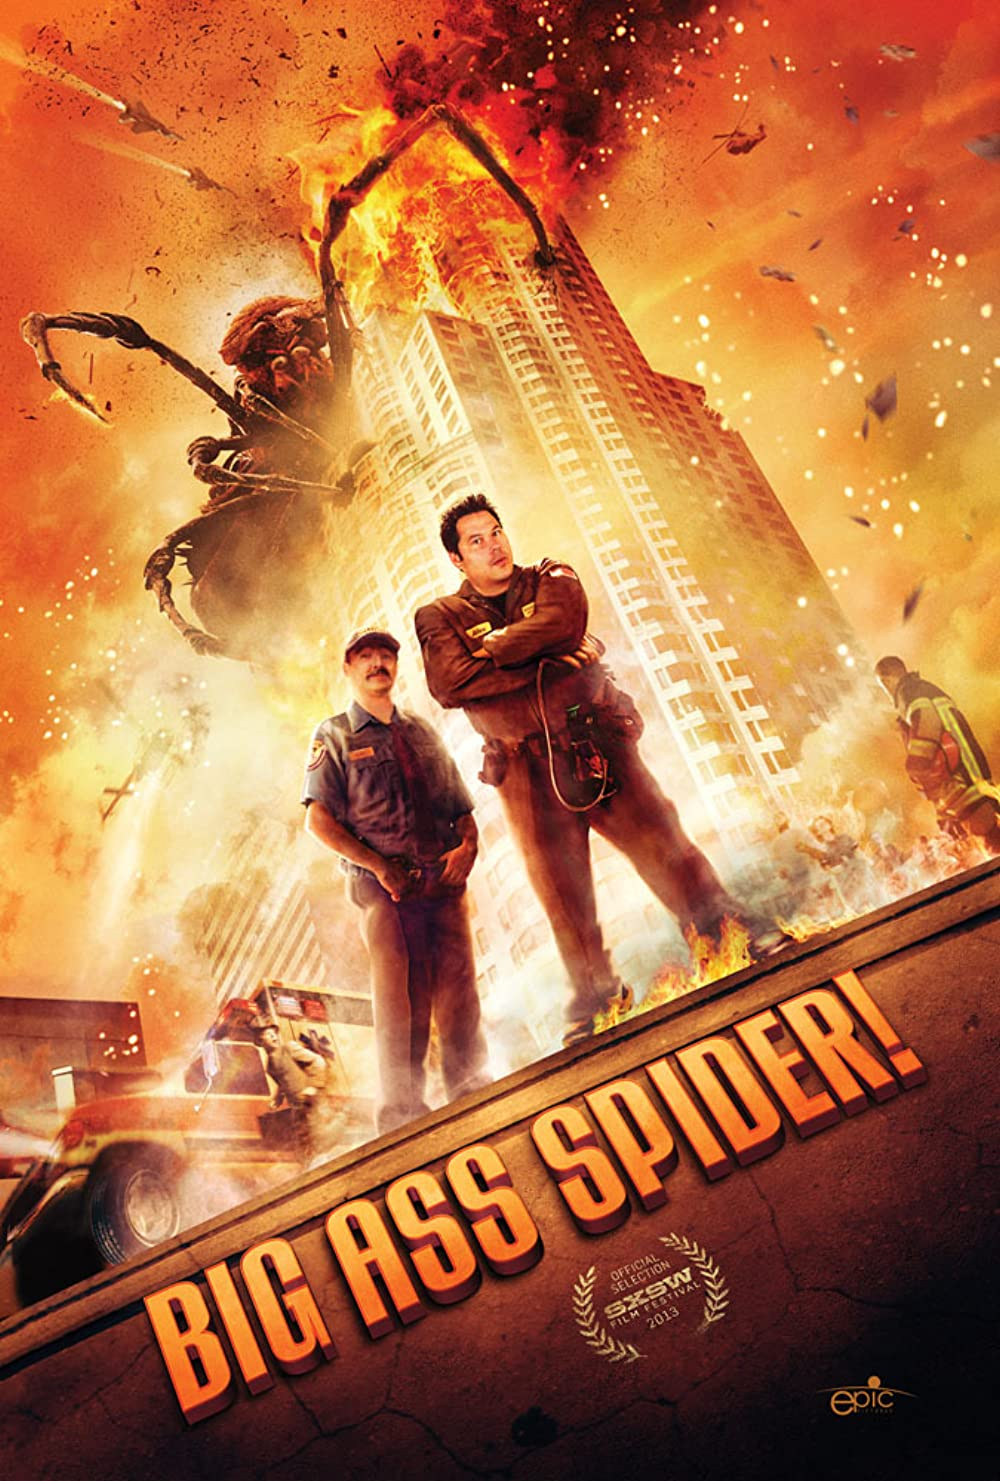 Big Ass Spider! 2013 Dual Audio Hindi 290MB BluRay ESub Download